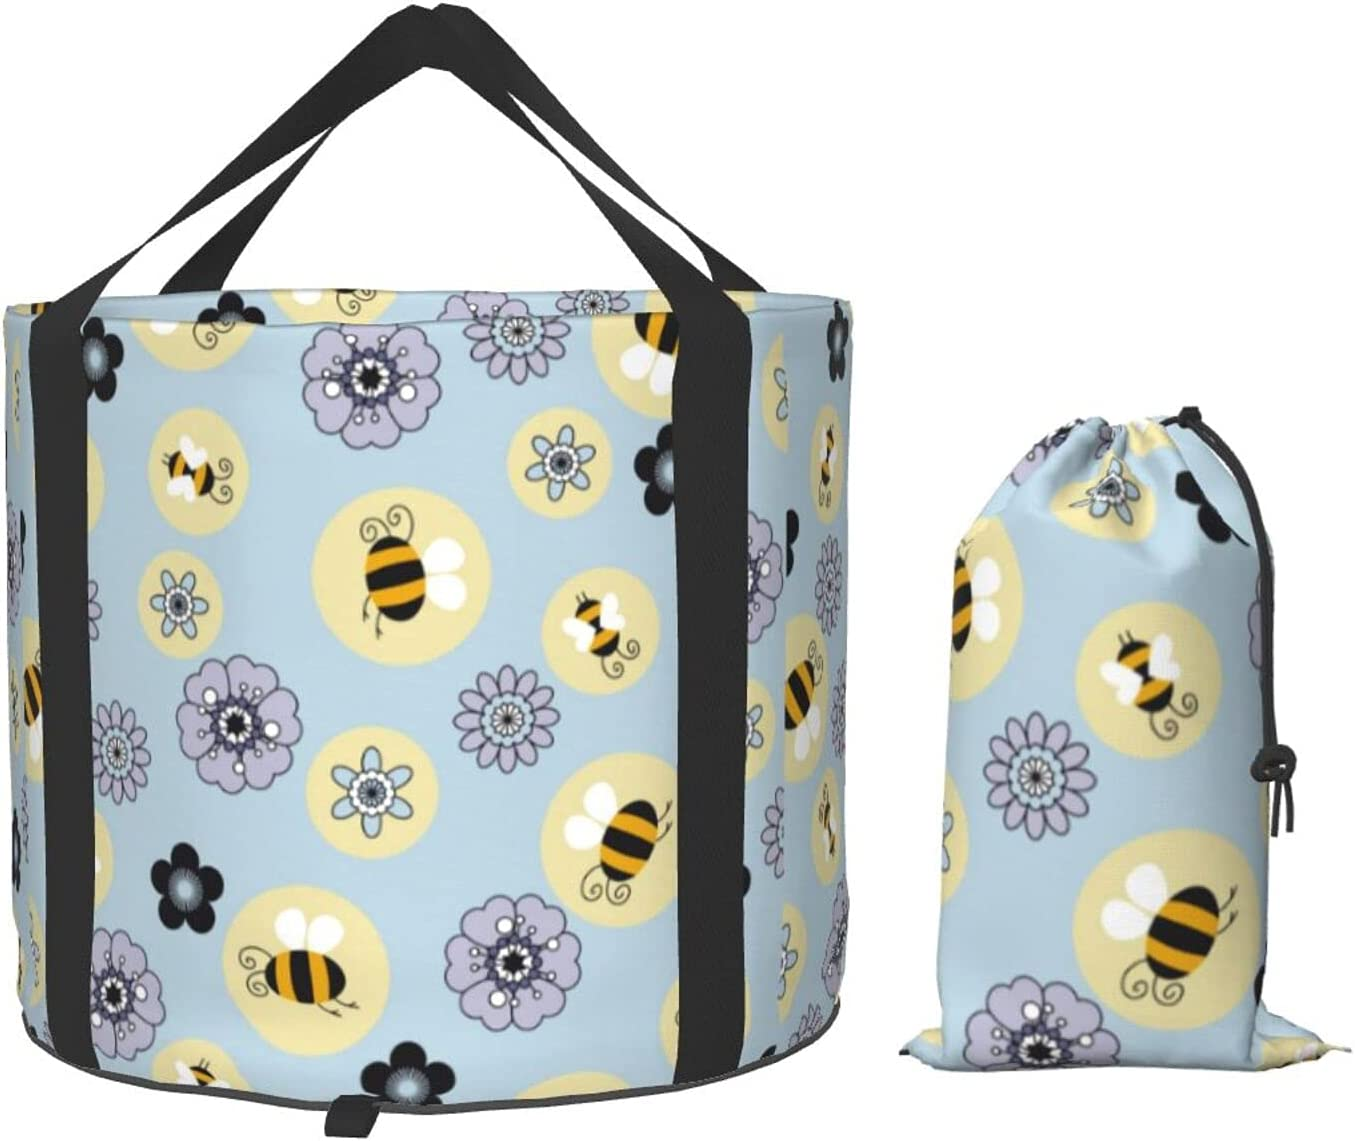 Multifunctional Portable Collapsible Bucket Max 67% OFF Flower Cartoon Bee Selling B